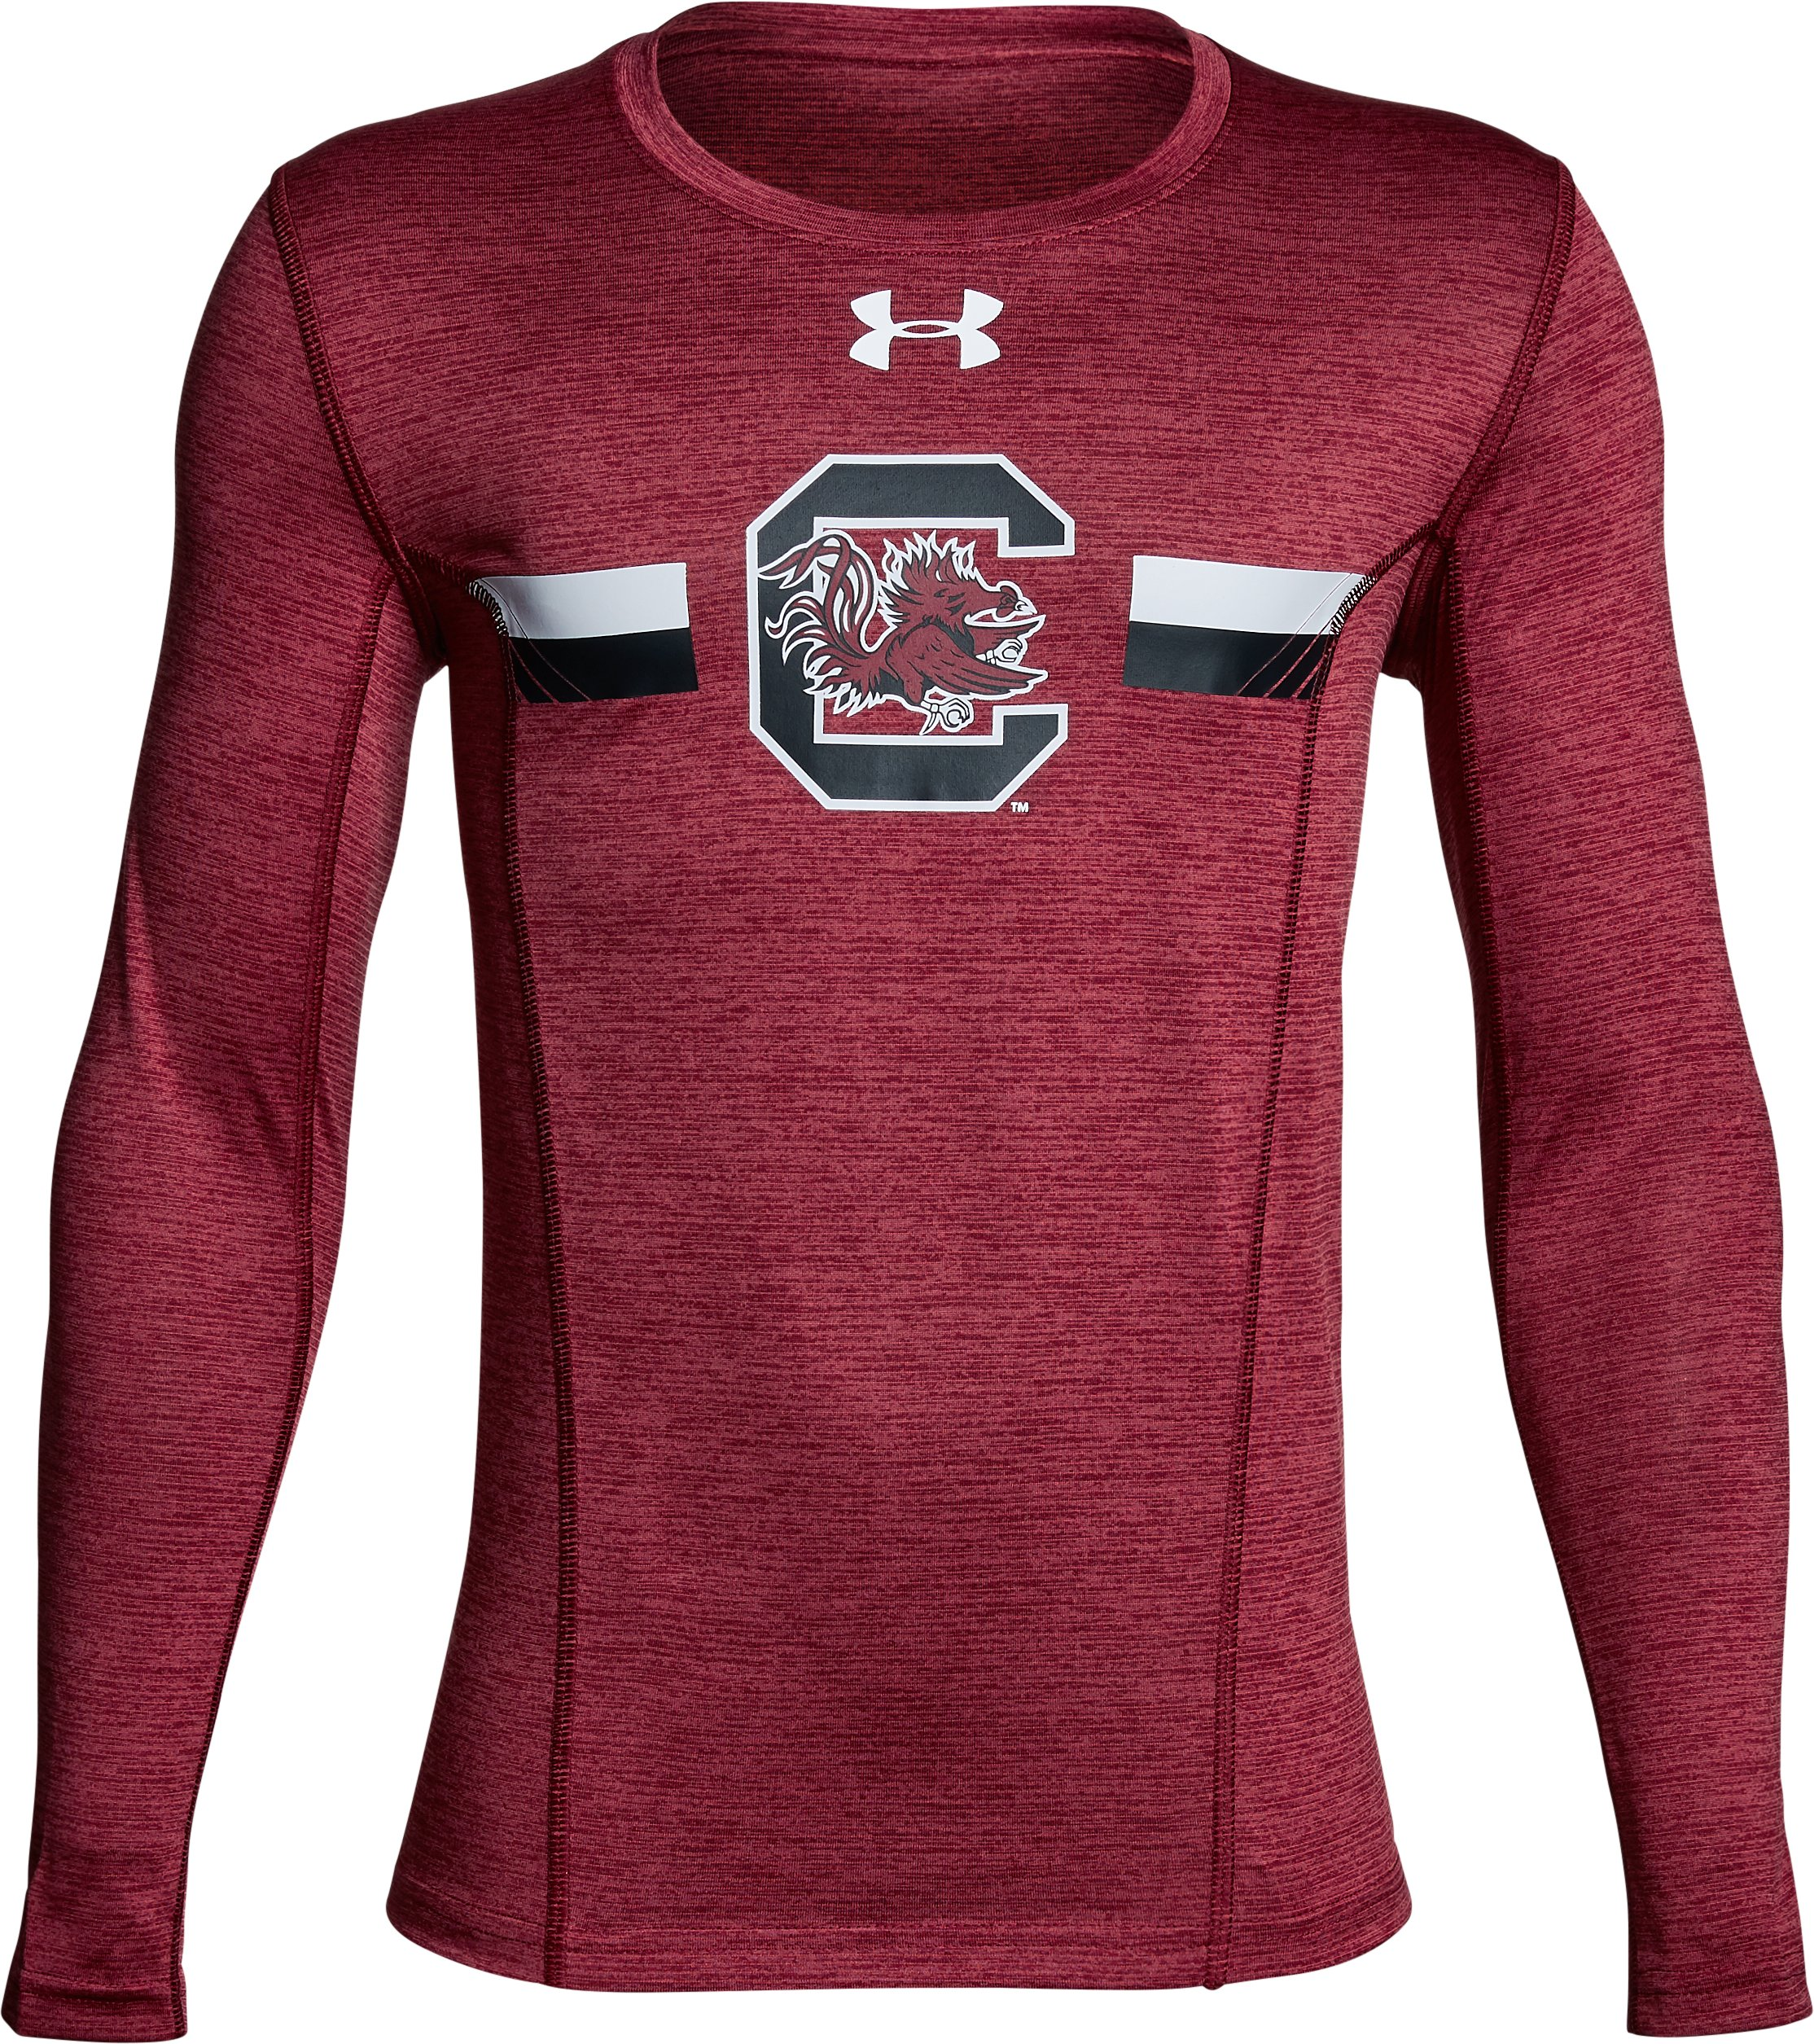 Boys' South Carolina Long Sleeve Training T-Shirt, Garnet, undefined